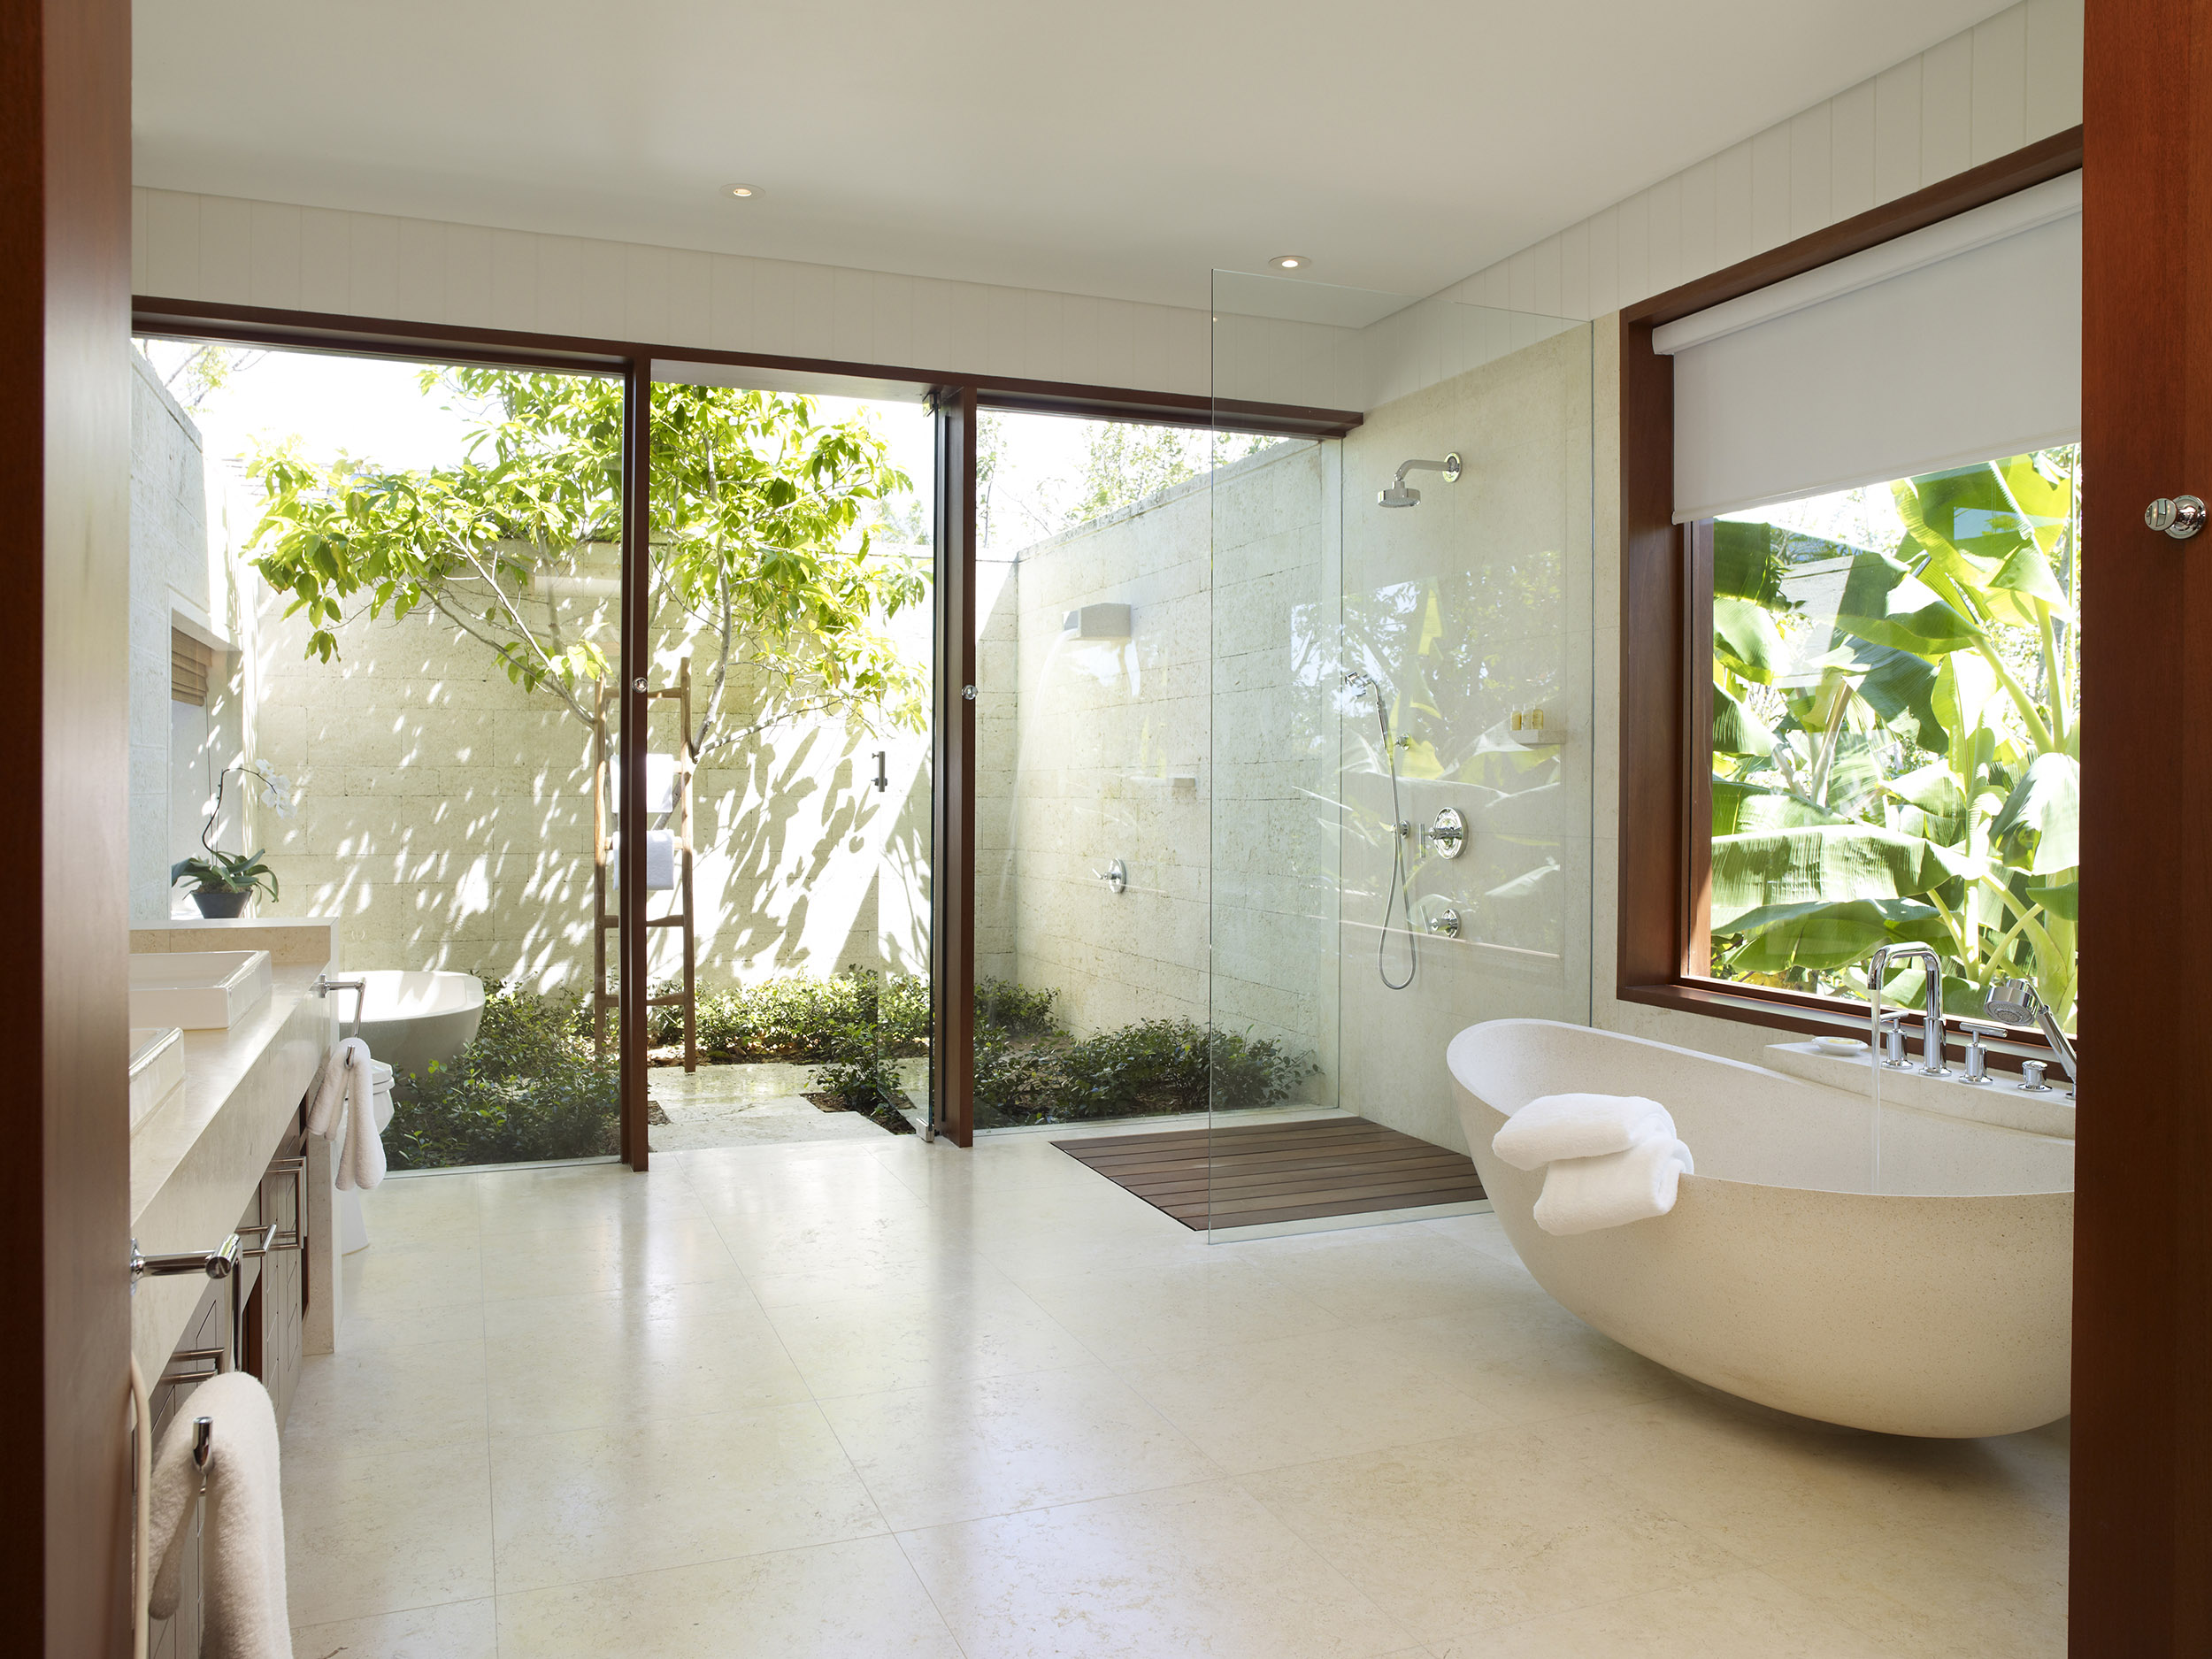 Tamarind - view of a bathroom with outdoor shower and bath tub